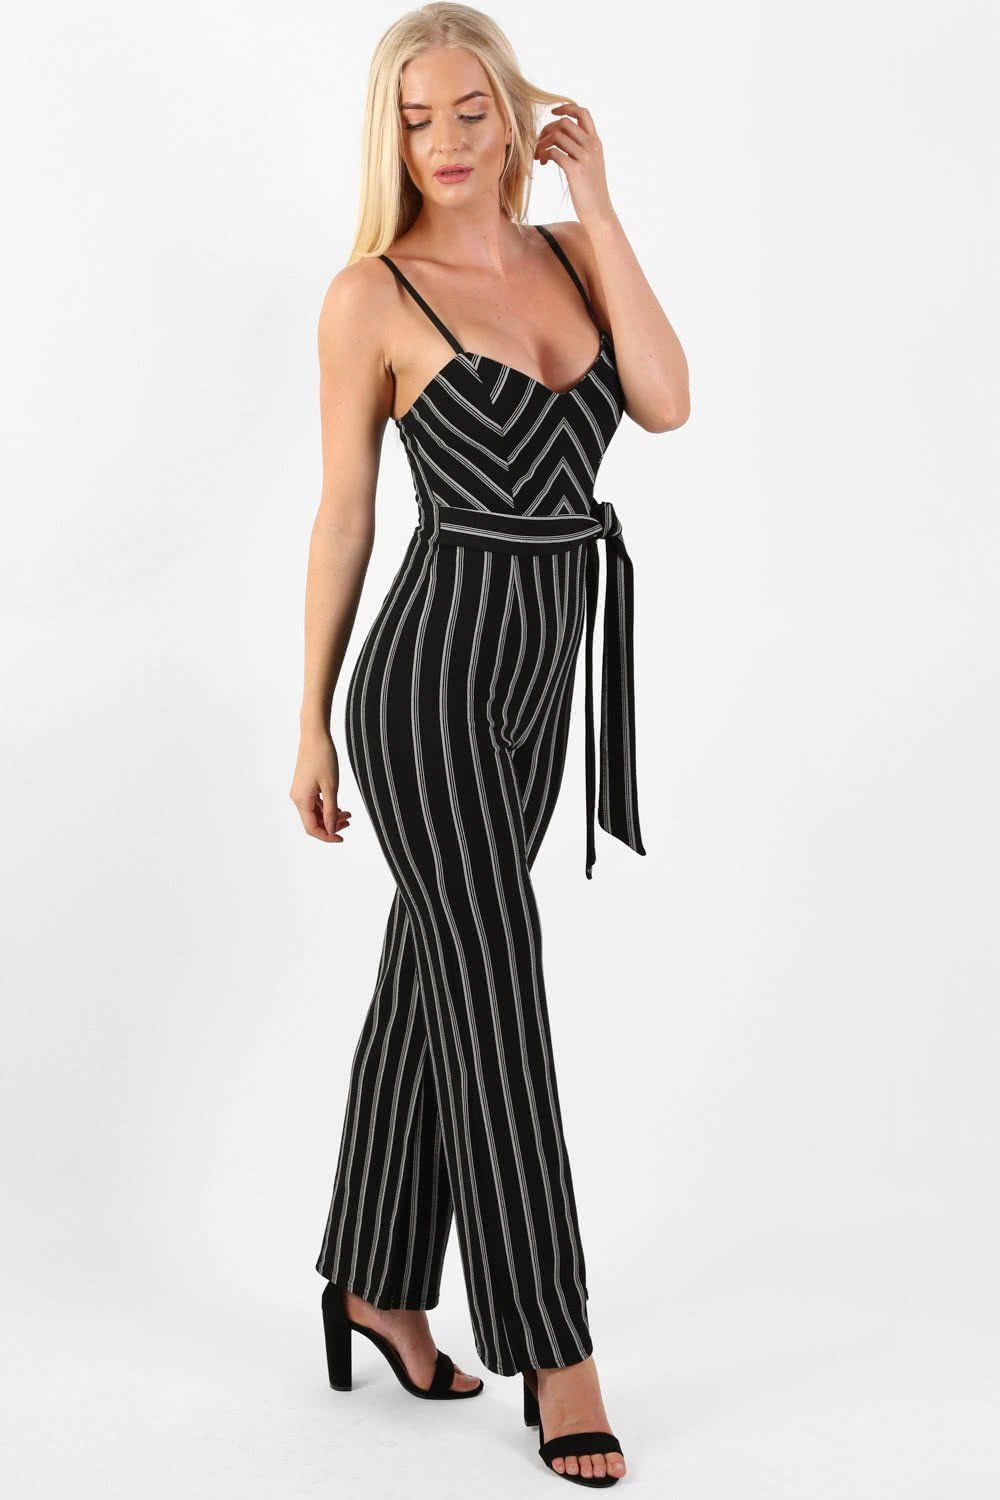 Monochrome Stripe Belted Jumpsuit in Black 0